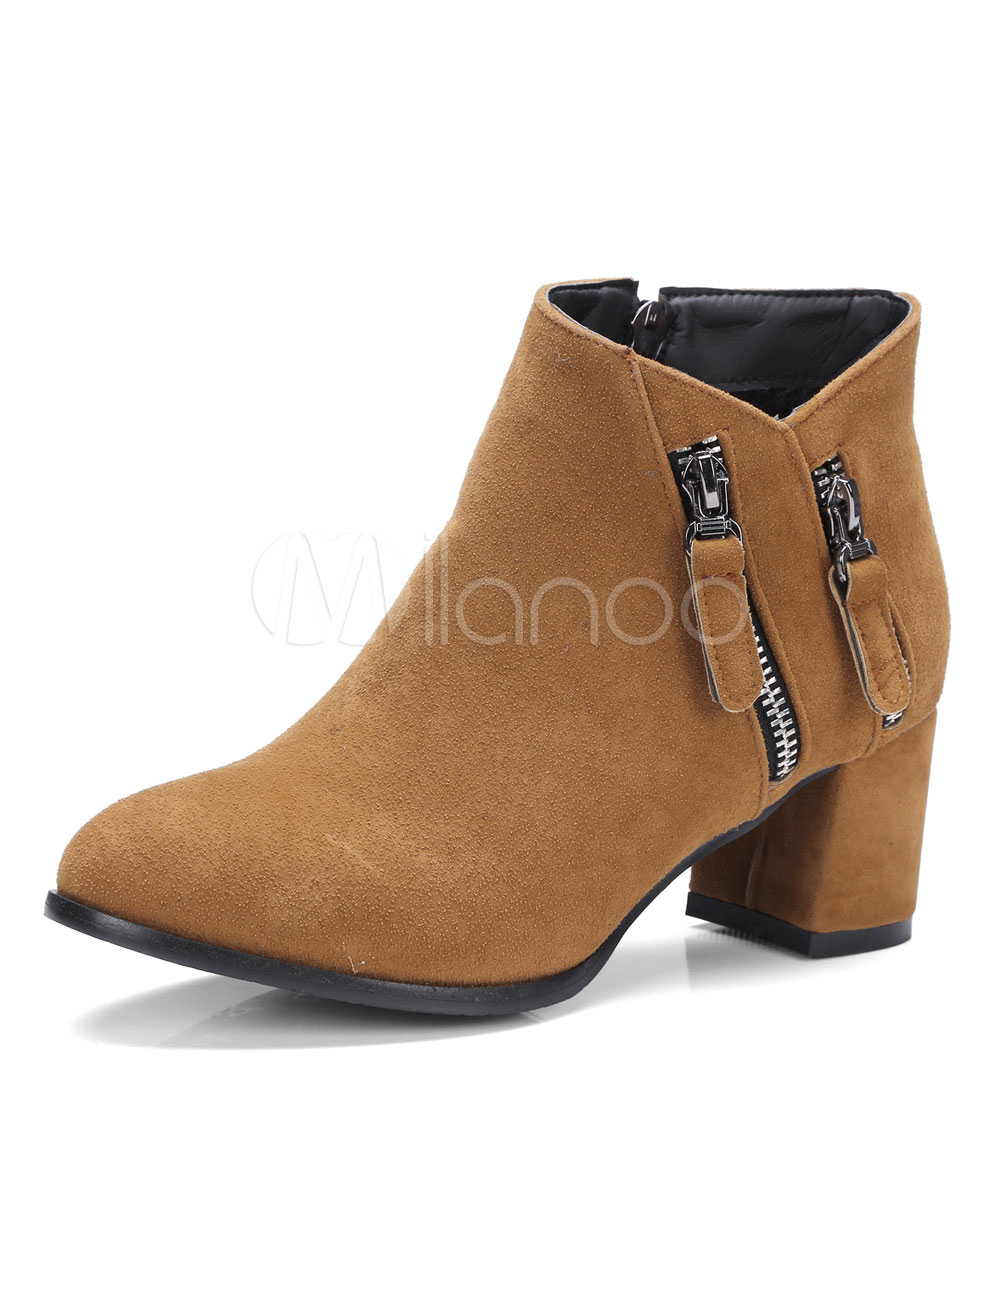 Buy Brown Ankle Boots Suede Pointed Toe Zip Detail Mid Heel Winter Booties For Women for $33.24 in Milanoo store